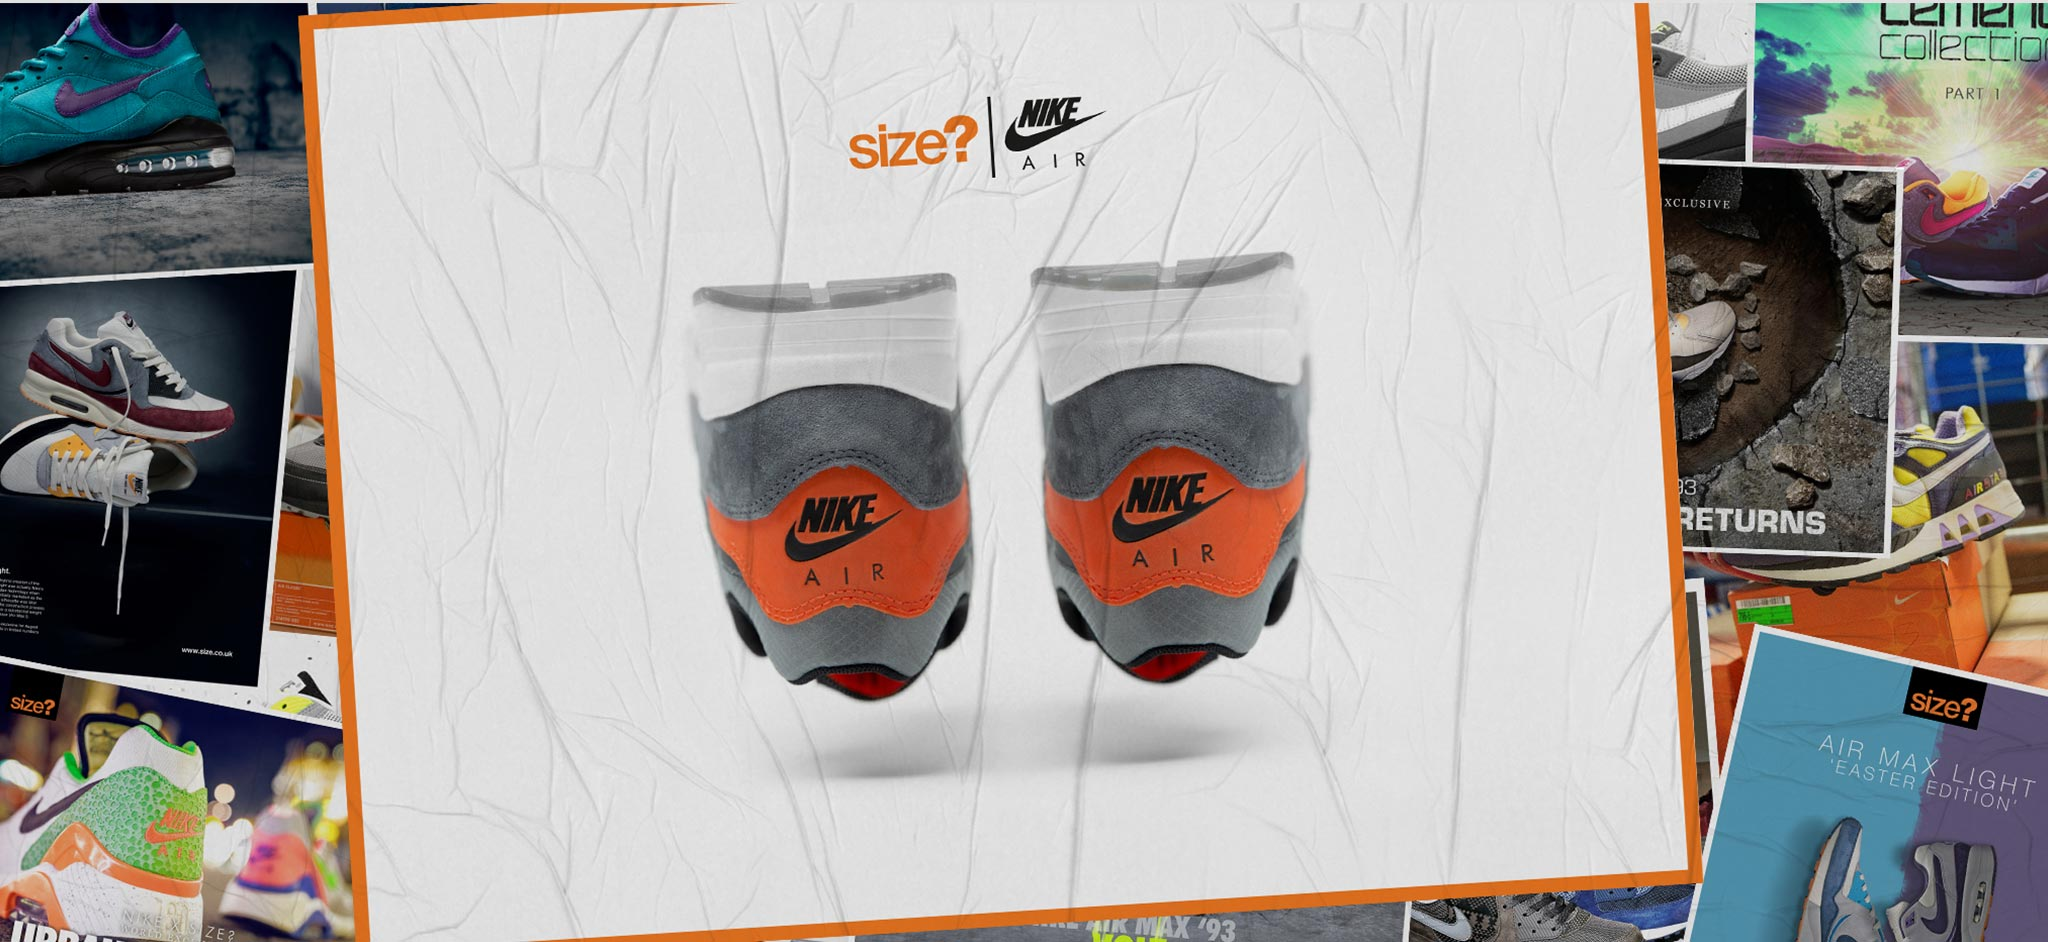 Nike Air Max Light – size? Exclusive